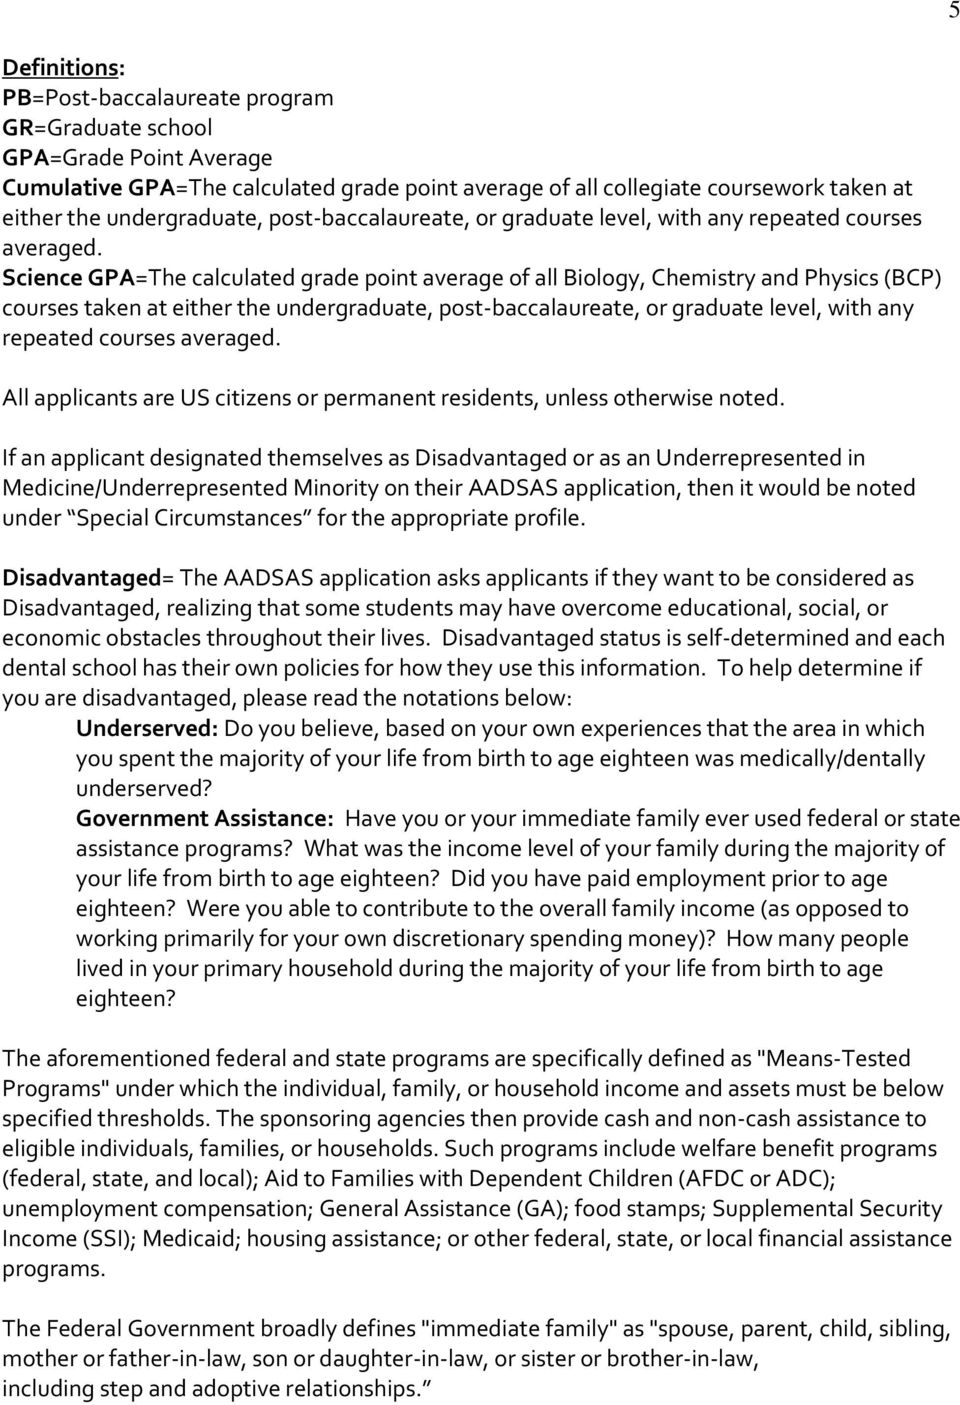 Science GPA=The calculated grade point average of all Biology, Chemistry and Physics (BCP) courses taken at either the undergraduate,  All applicants are US citizens or permanent residents, unless